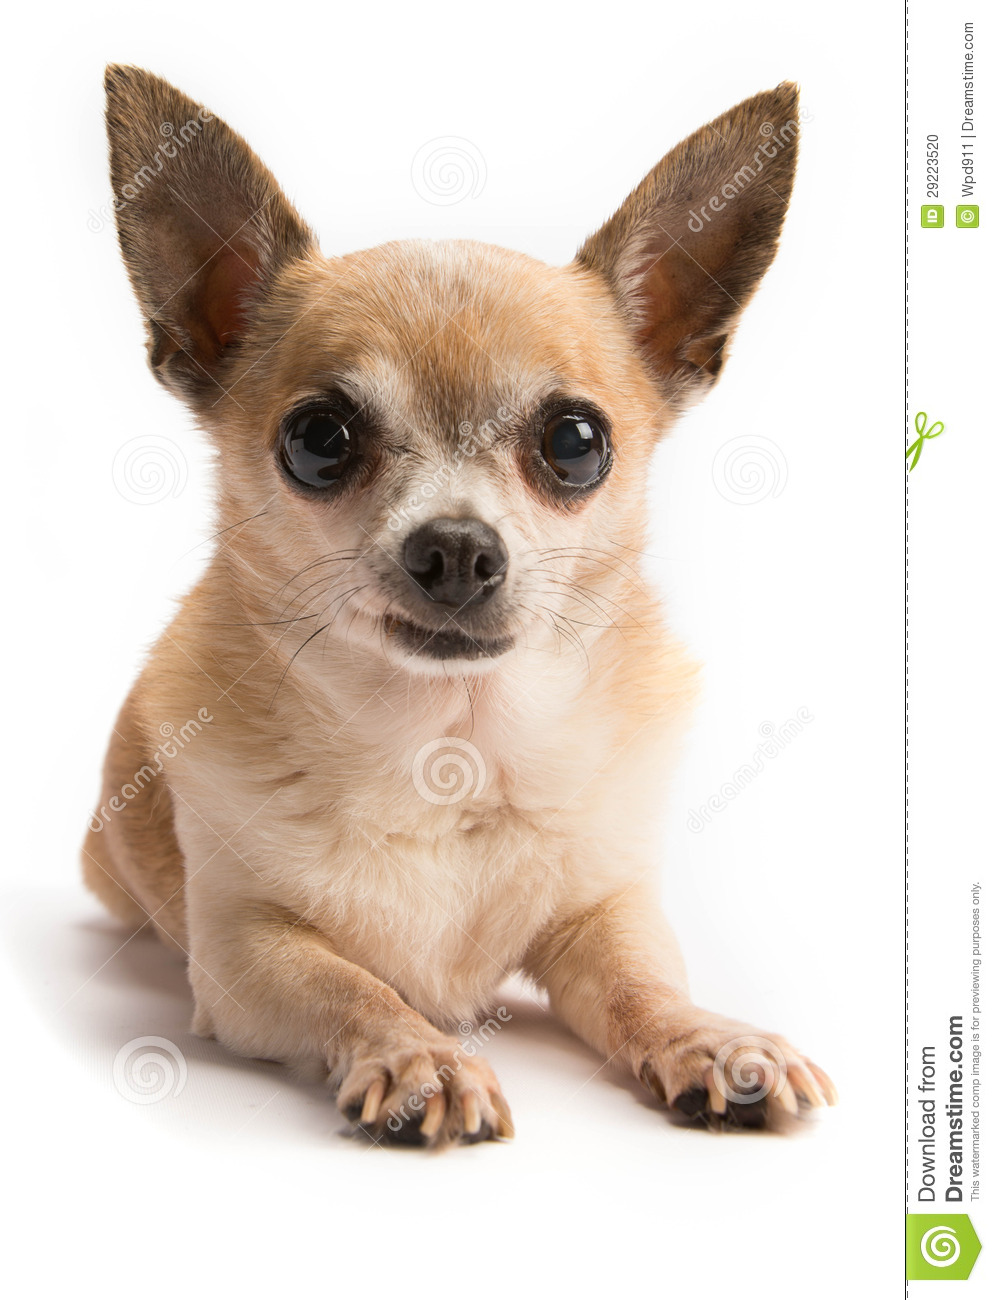 Cute Chihuahua Isolated On White Background Stock Photo - Image ...